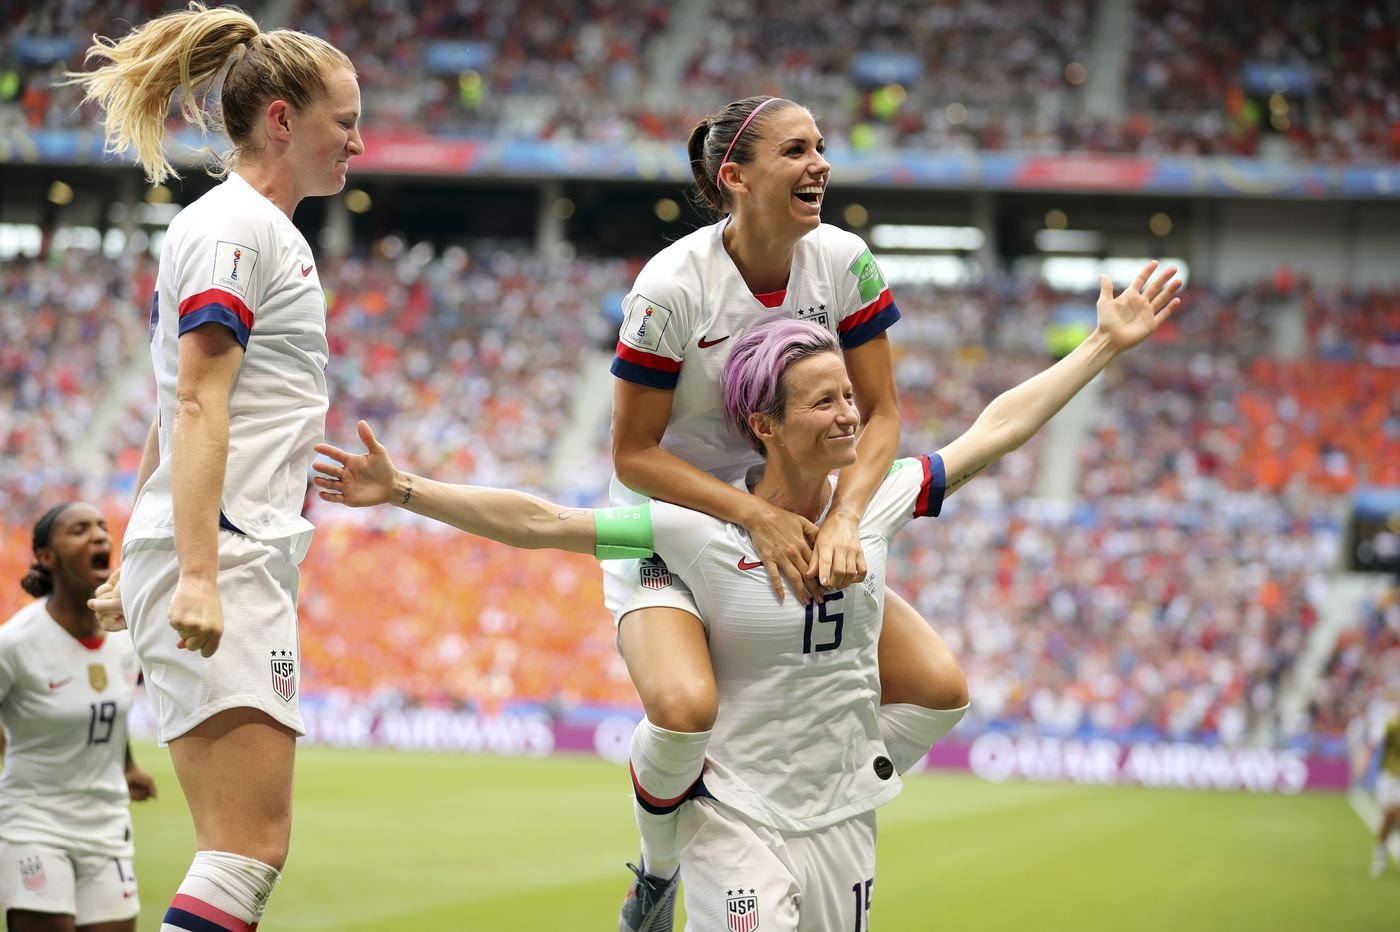 d2d67bbe3 Megan Rapinoe's U.S. women's team won a fourth World Cup, and the right to  be rewarded ...